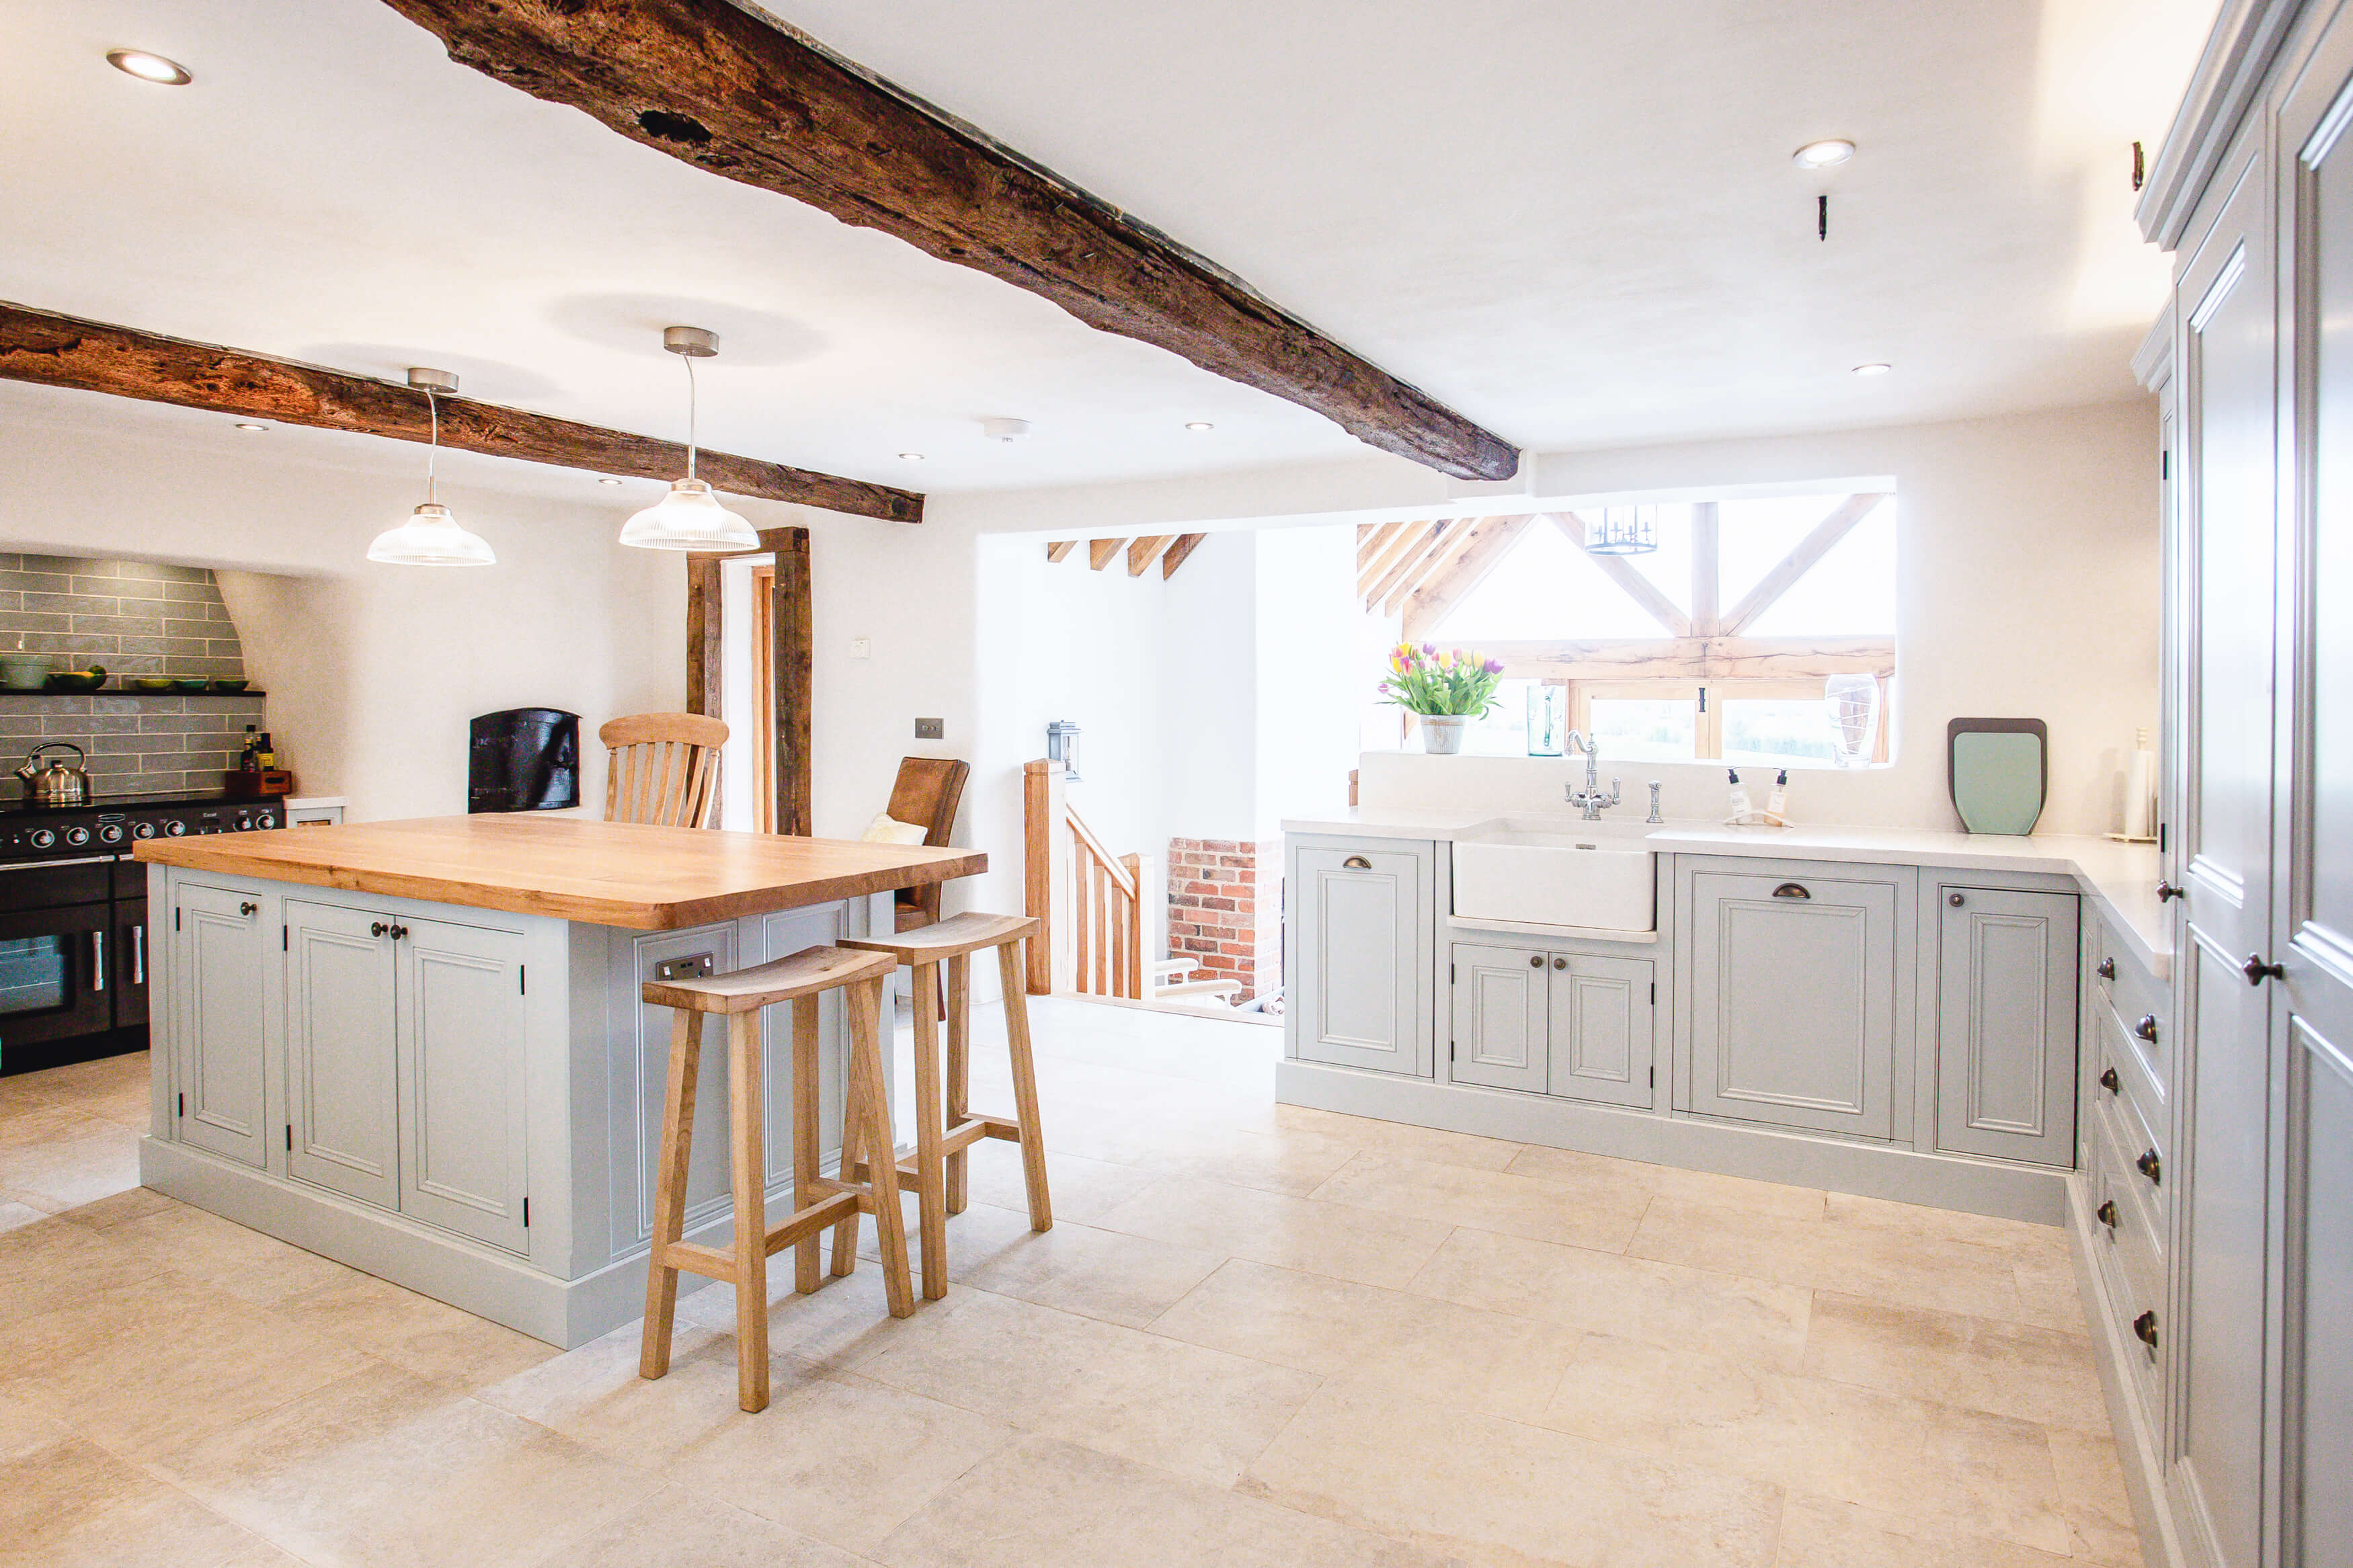 Elegant Bespoke Living, Bespoke Kitchen, Leamington Spa, Carpentry, Joinery, Kitchen, Kitchen Island, Bar stools, welsh dresser, Interior Design,  Designer Kitcehn